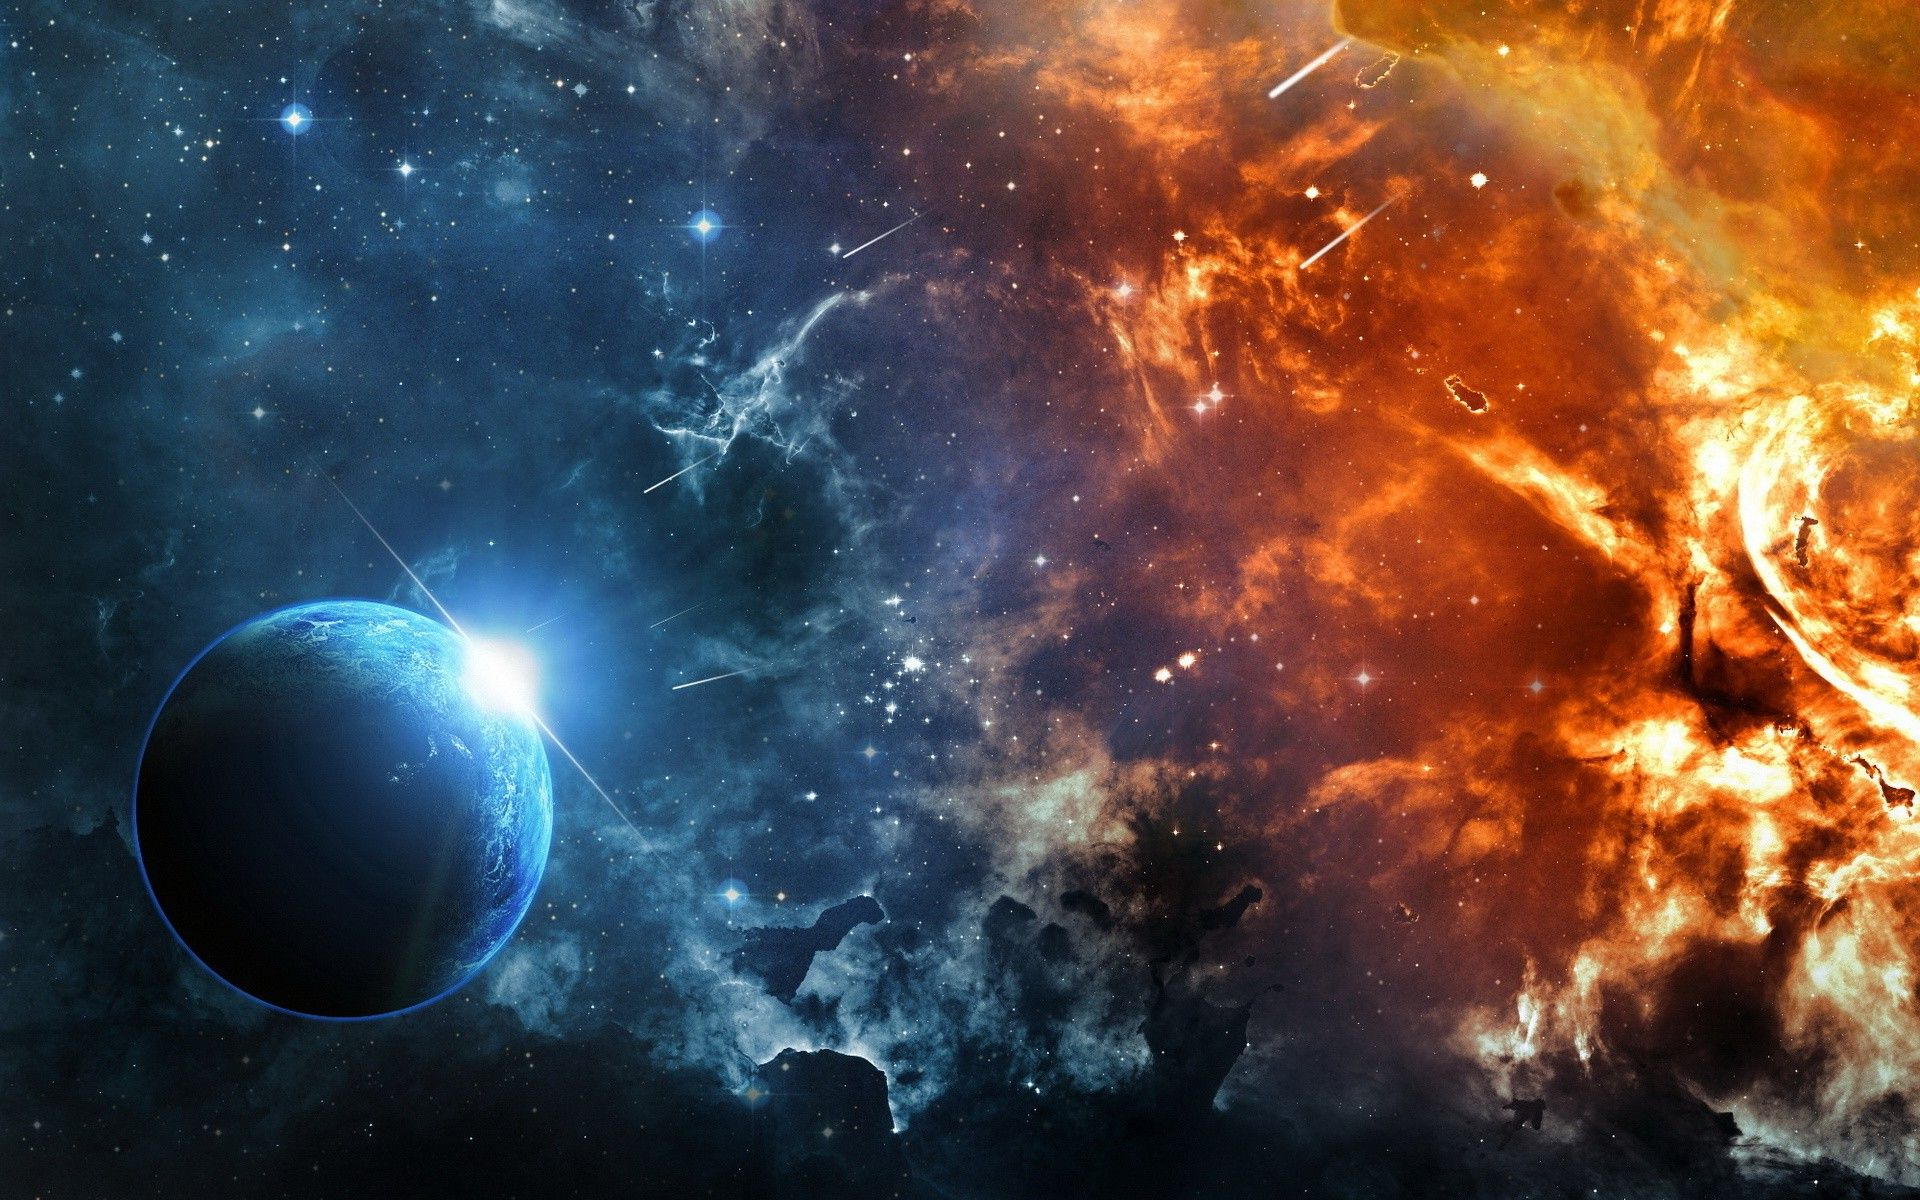 wallpaper space fire planet stars asteroid galaxy universe